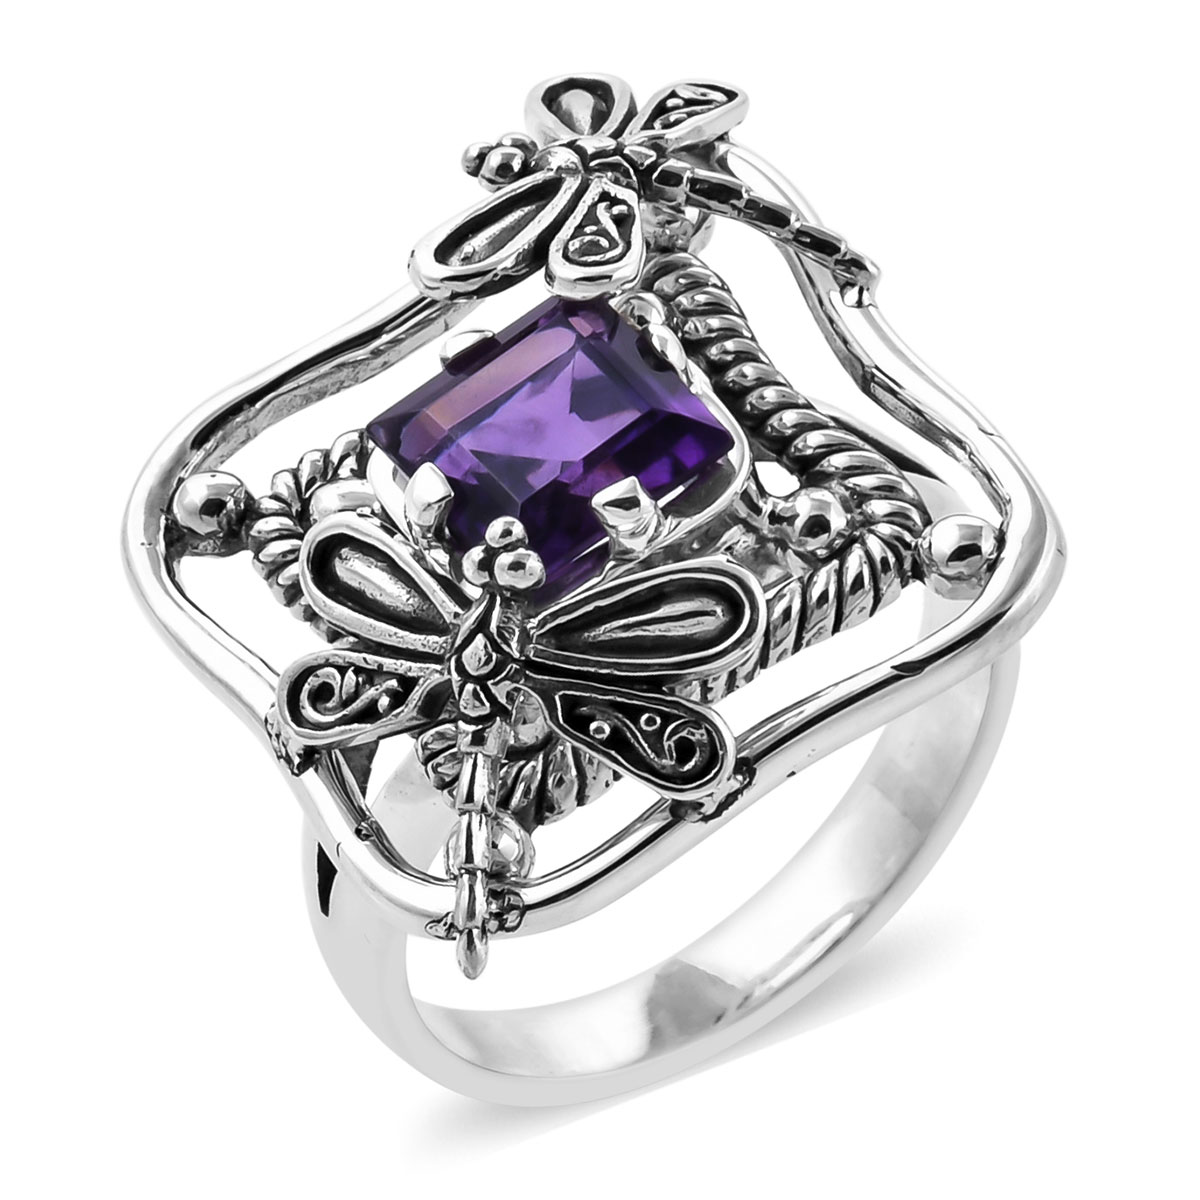 BALI LEGACY Amethyst Ring in Sterling Silver (Size 8.0) (Avg. 7 g) 1.64 ctw